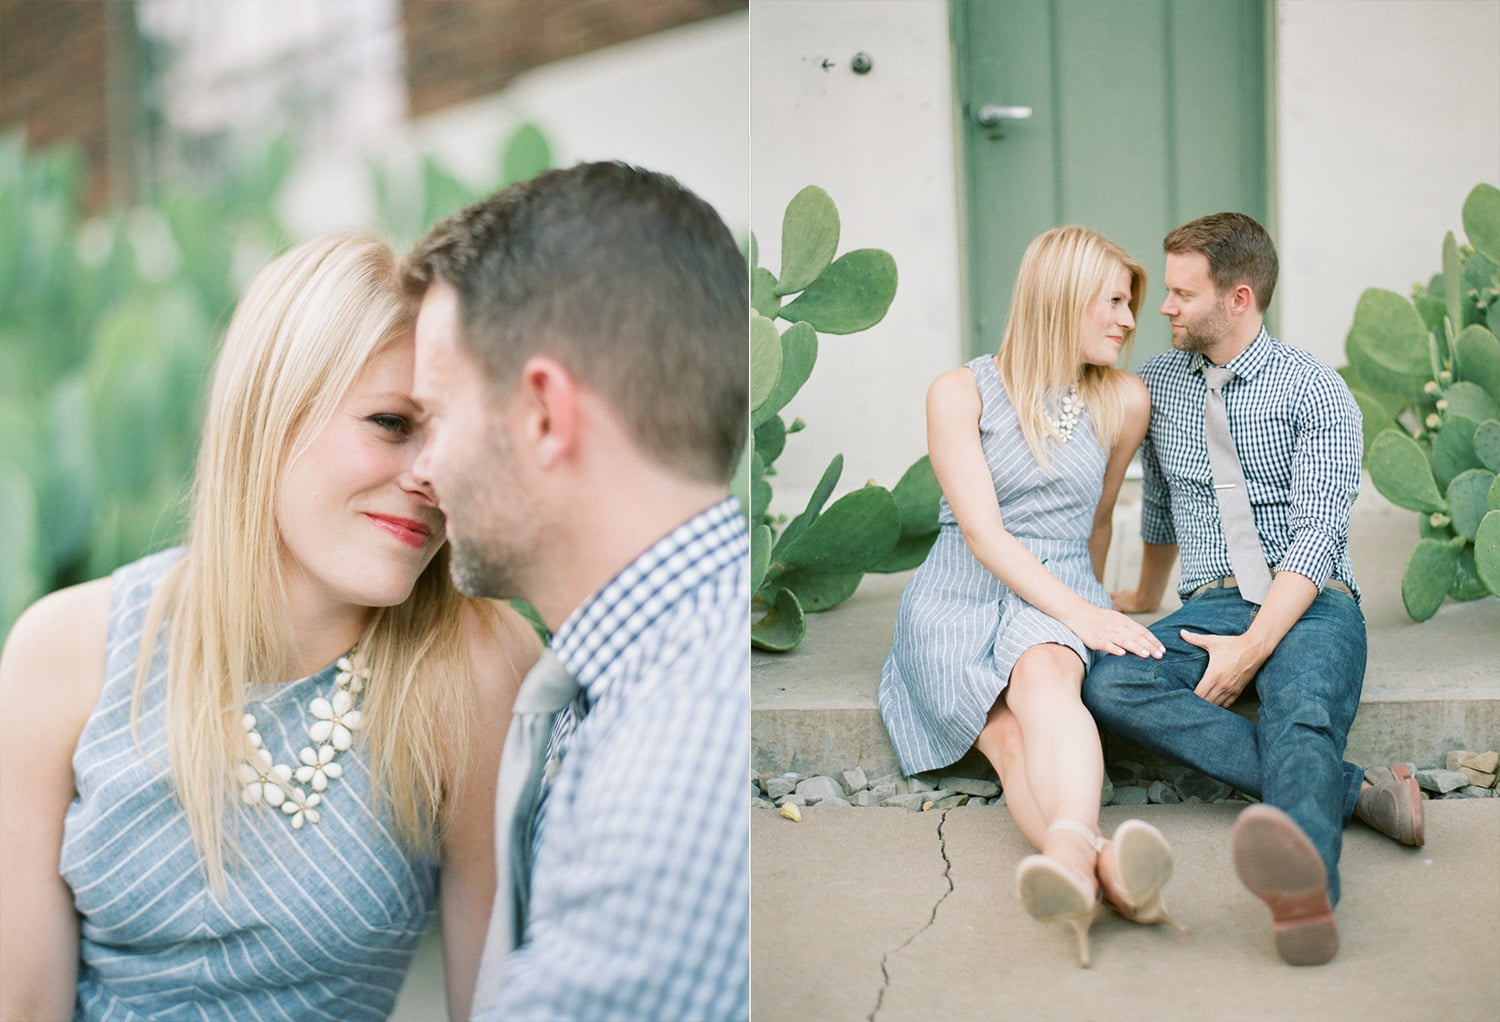 DEEP_ELLUM_TX_FILM_ENGAGEMENT_SHOOT__MATTHEW_MOORE_PHOTOGRAPHY_PAN_015.jpg